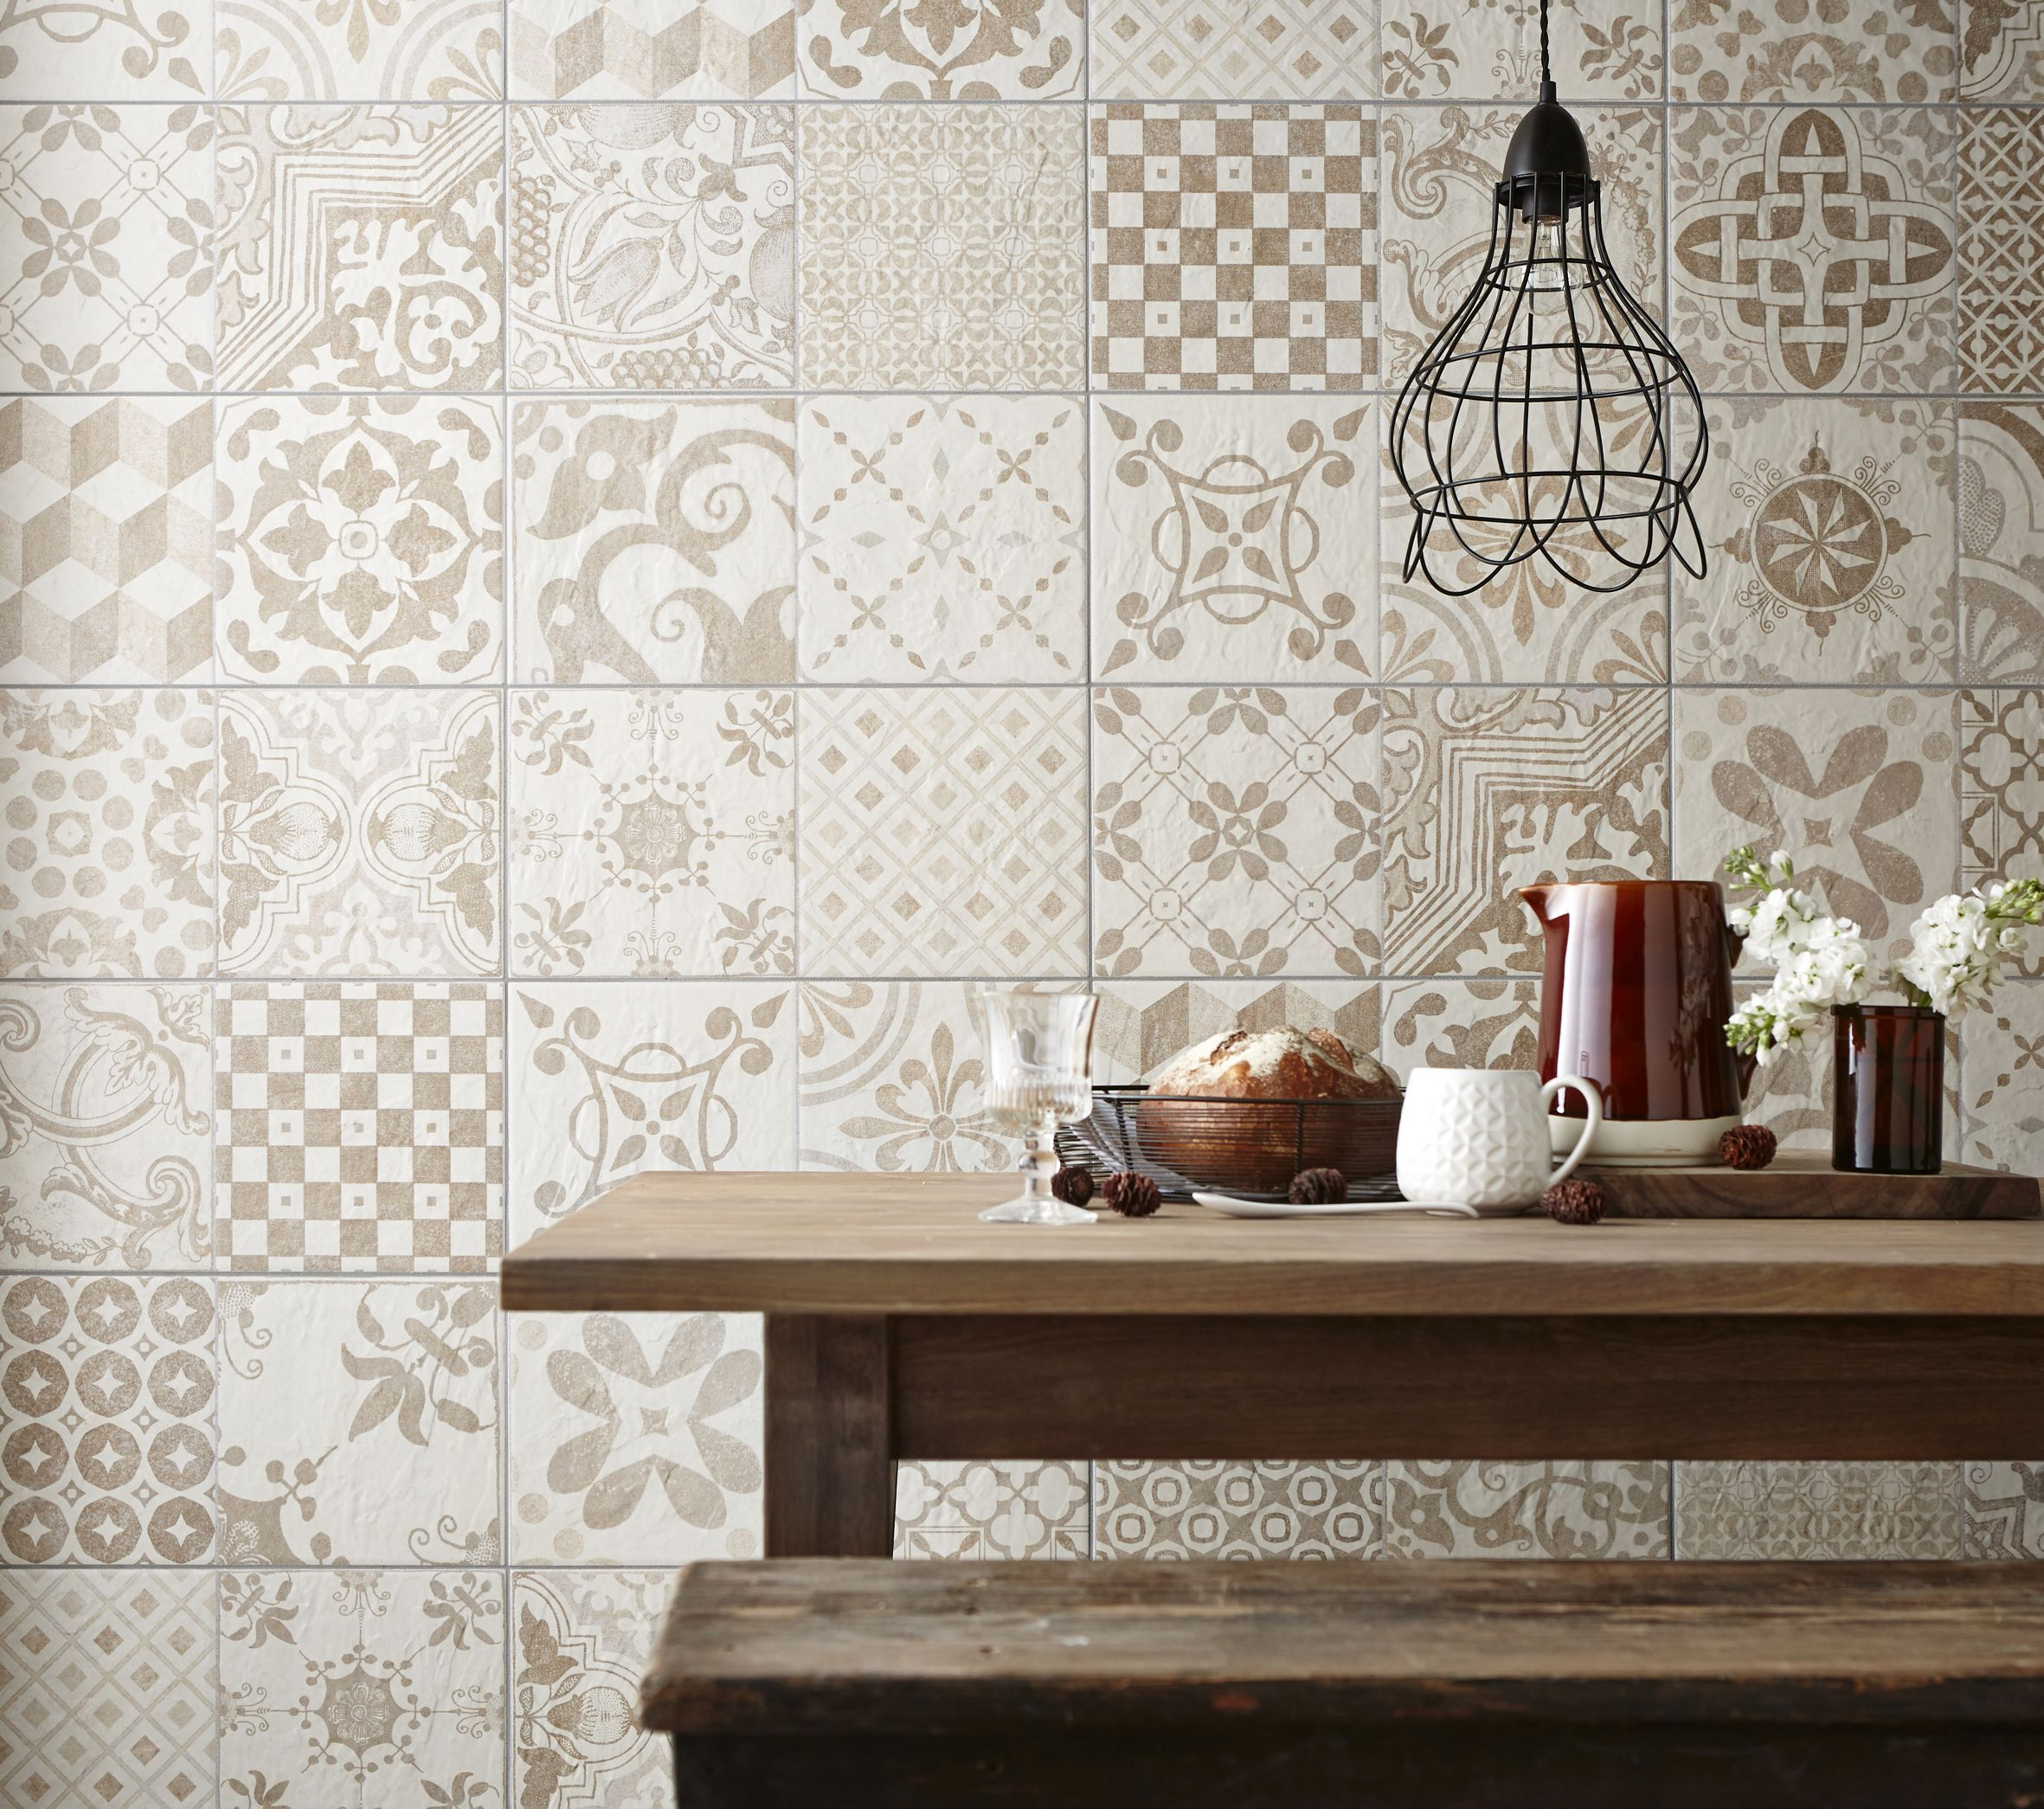 Revive 7.75 x 7.75 Ceramic Floor and Wall Tile in Leaf